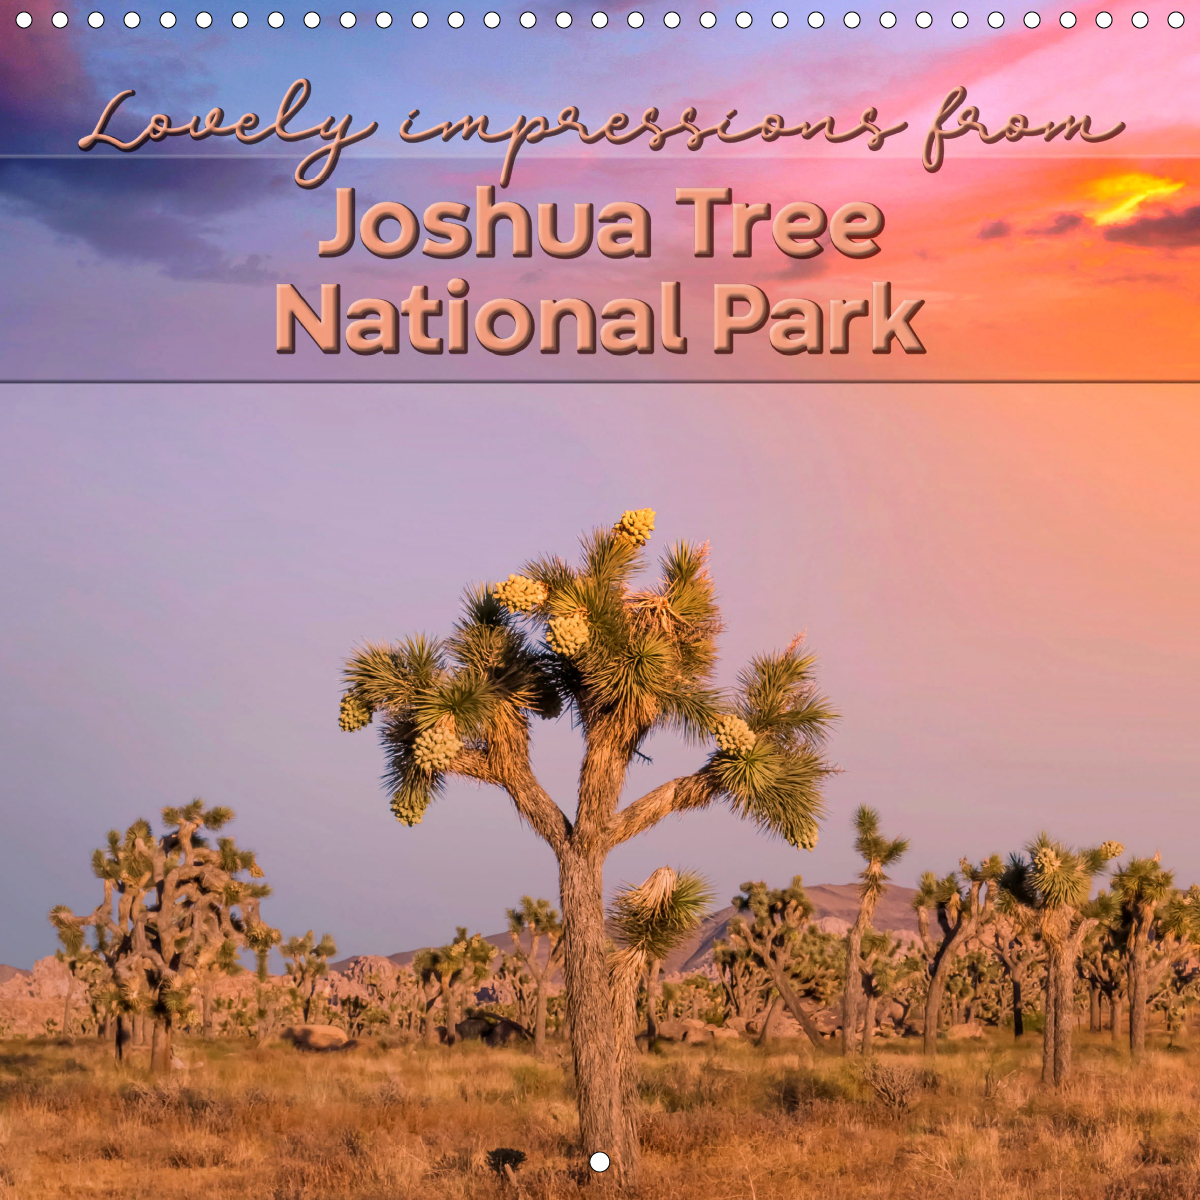 Calendar front - Lovely impressions from Joshua Tree National Park